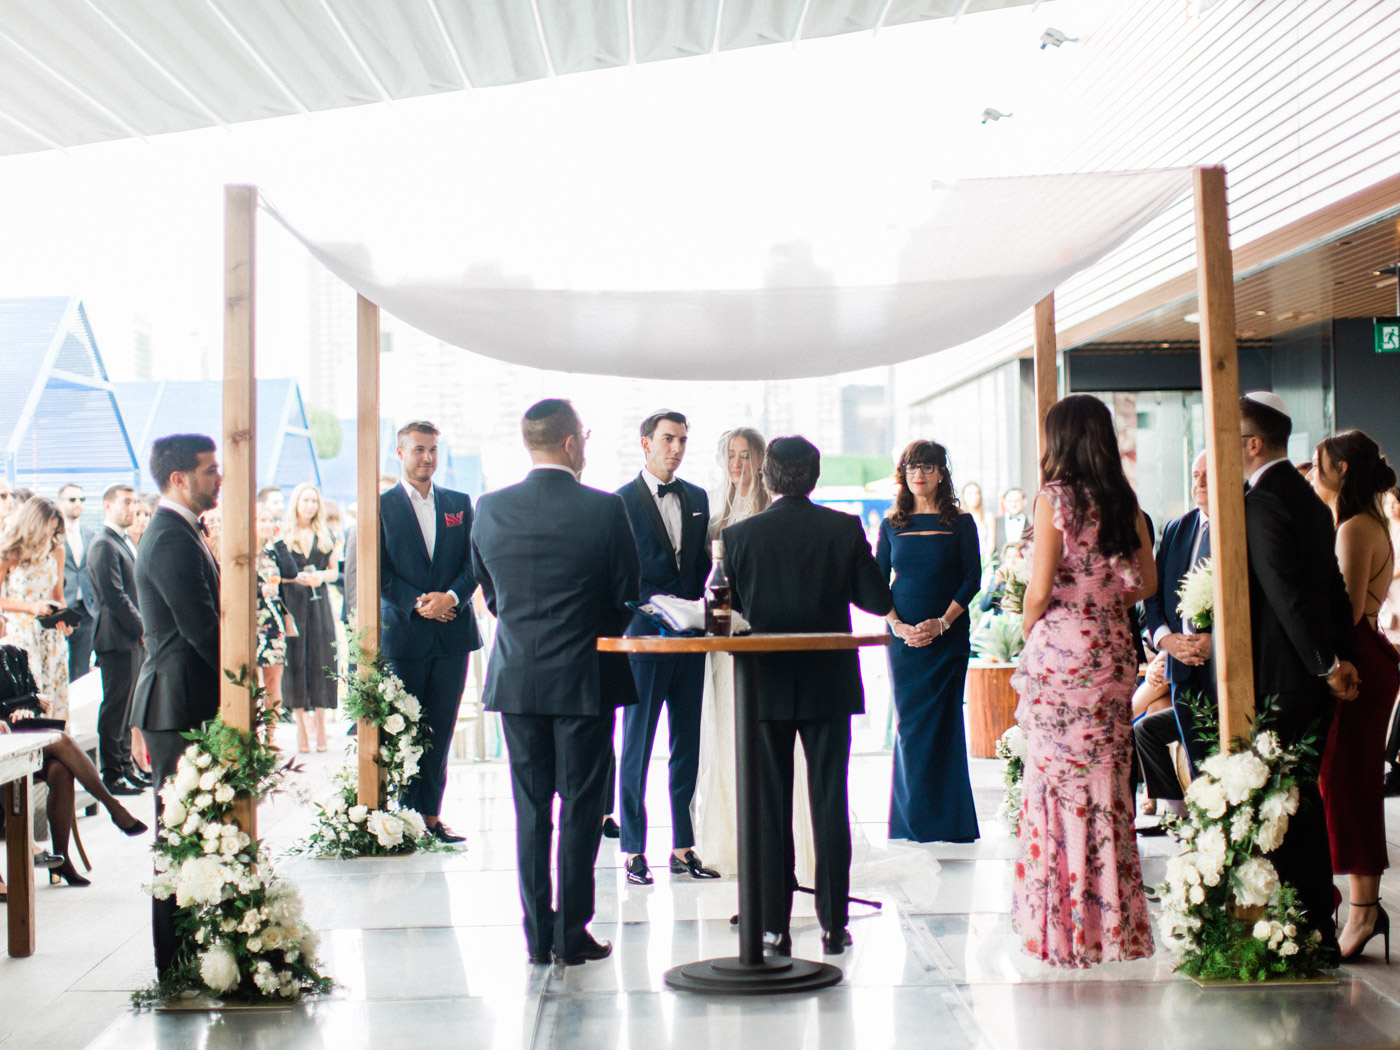 -bride and groom getting married under chuppah at their traditional jewish wedding. Captured by Toronto wedding photographer Corynn Fowler Photography